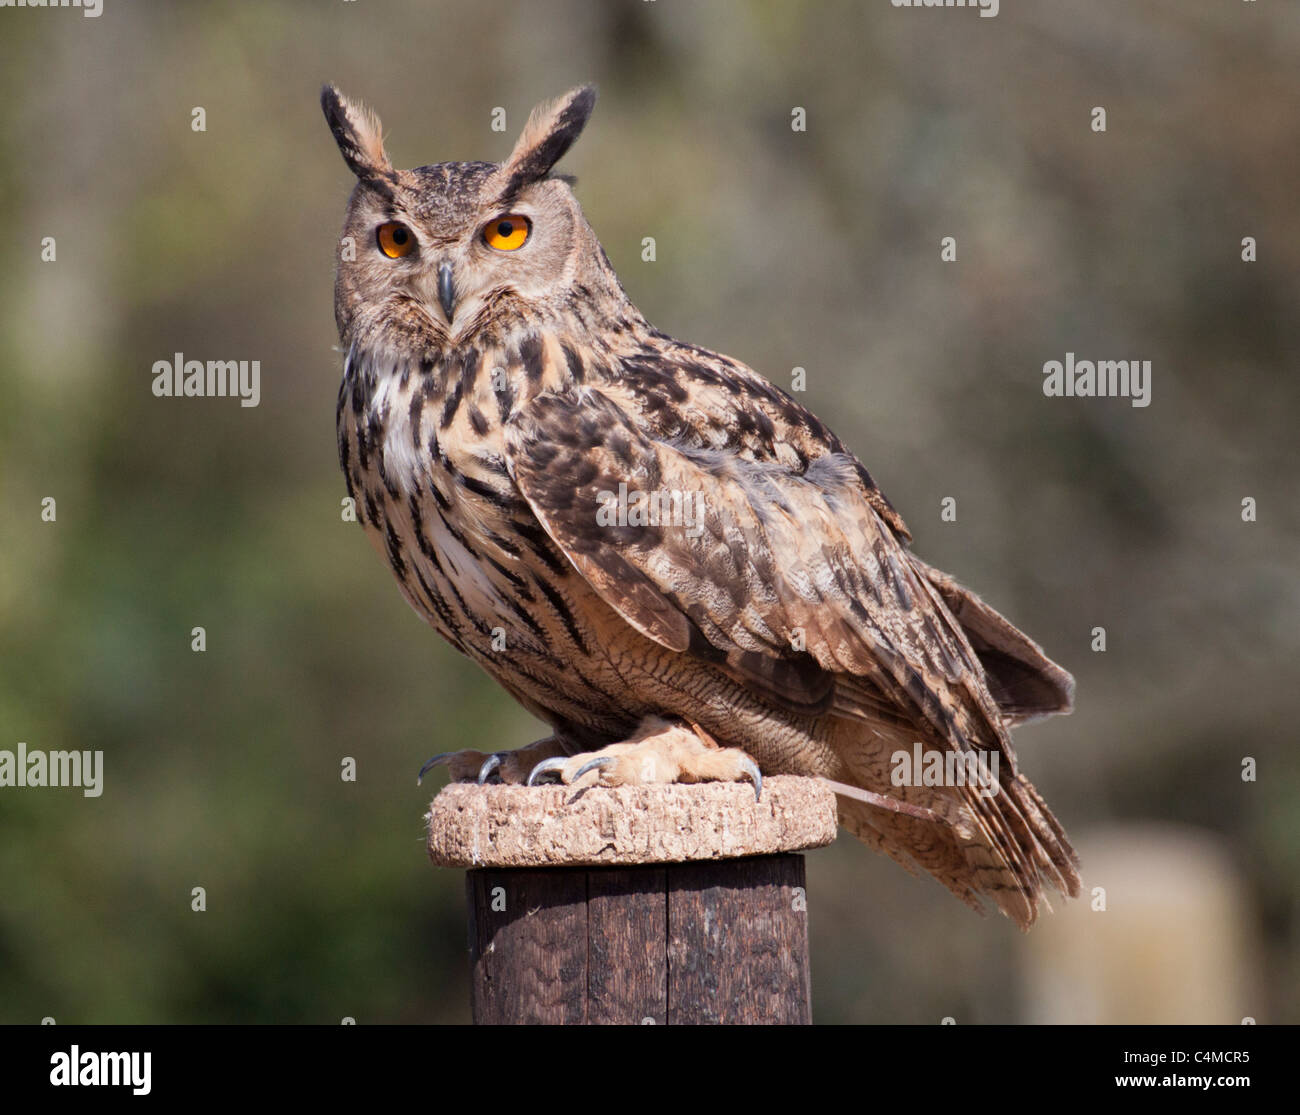 Eurasian Eagle Owl perched on a fencepost looking towards camera - Stock Image